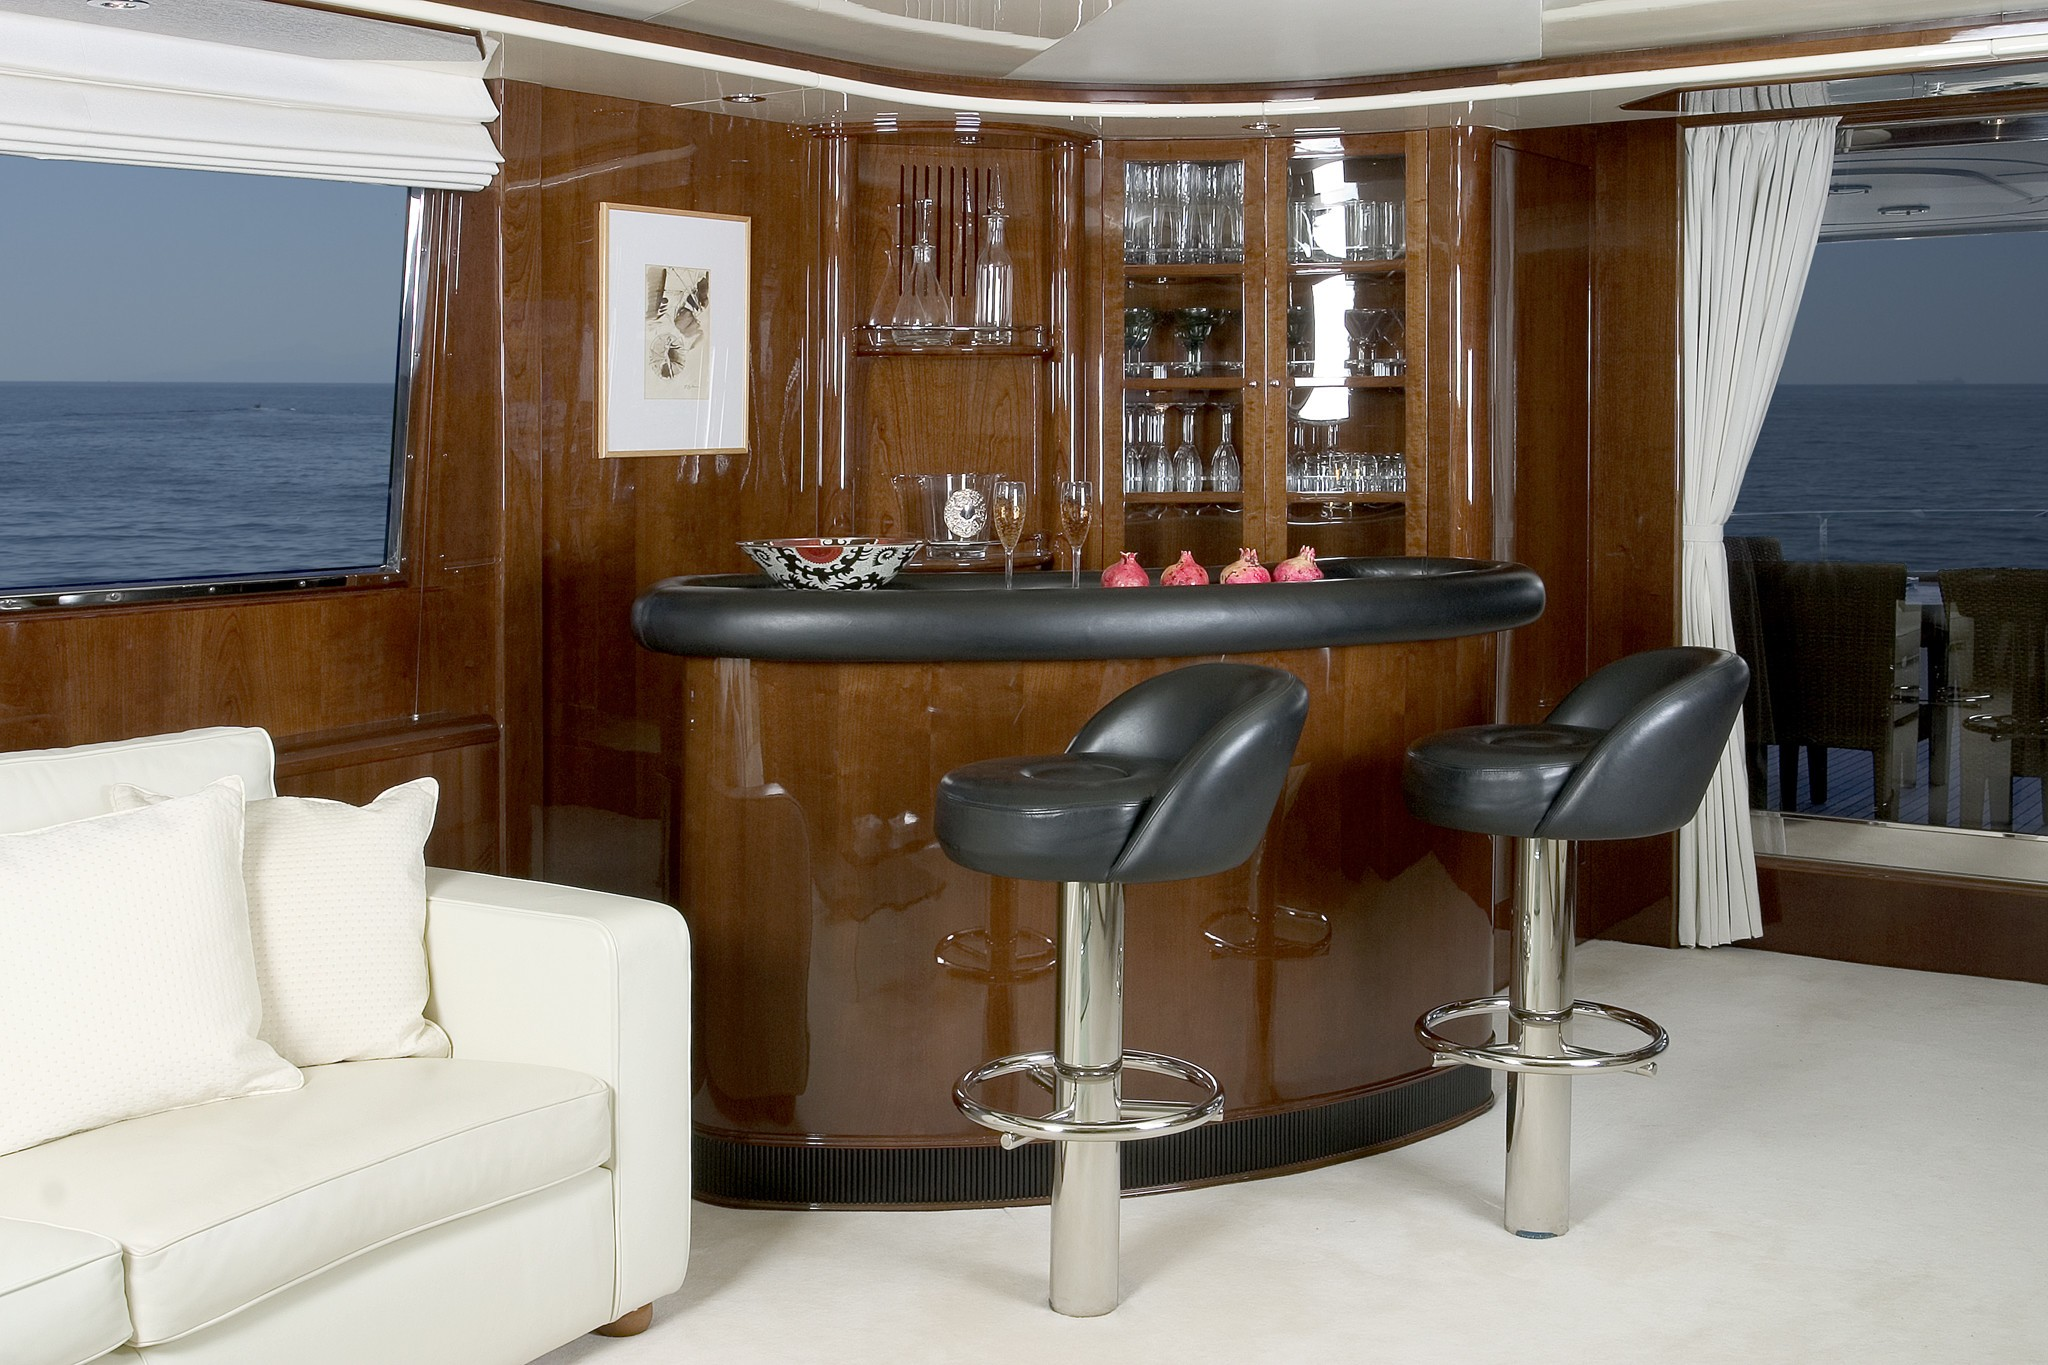 Saloon Drinks Bar On Yacht LET IT BE